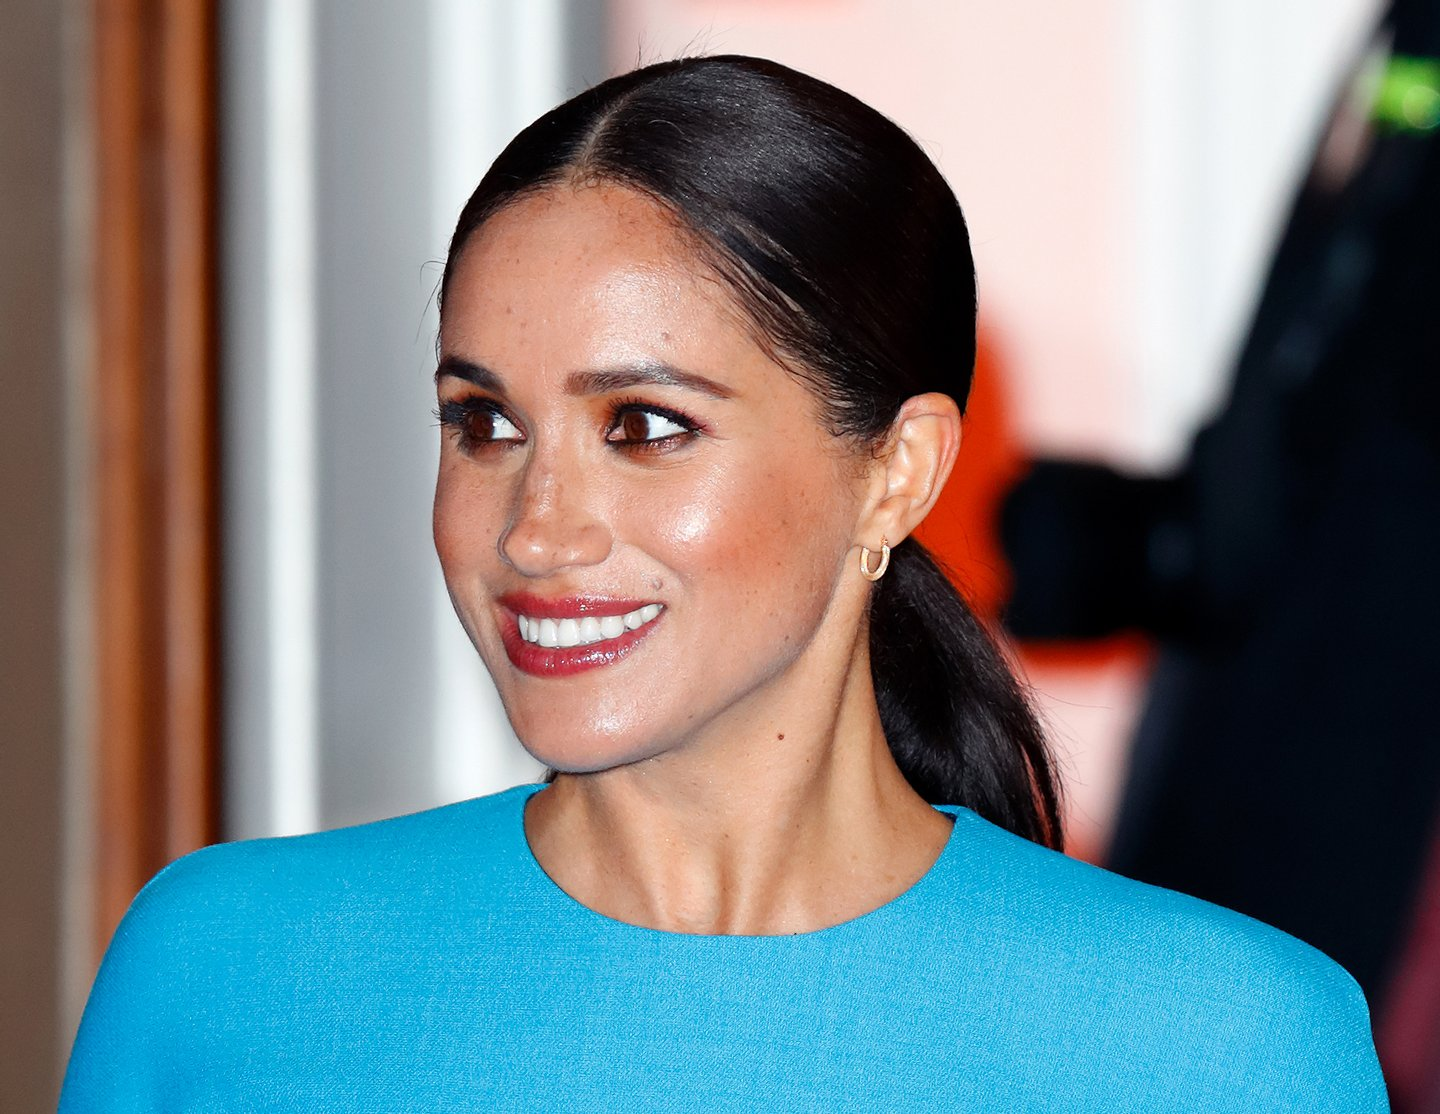 Harry, Meghan and the first official reappearance after Megxit